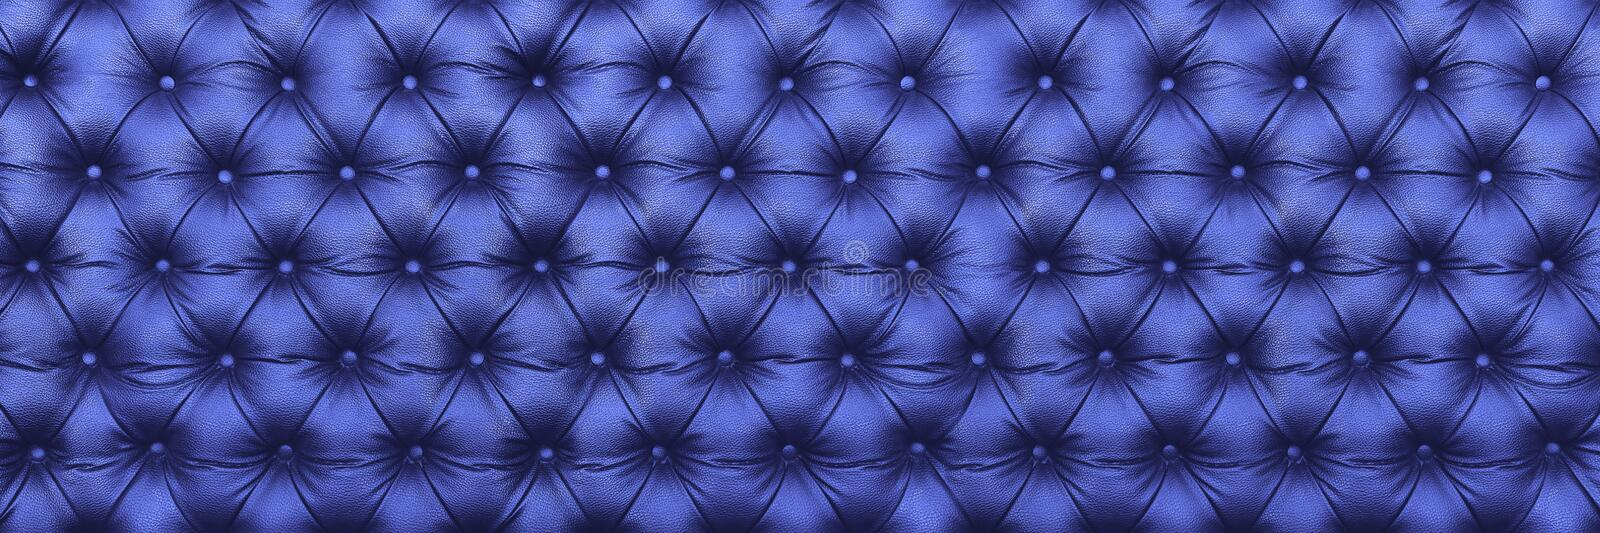 horizontal elegant dark blue leather texture with buttons for pa stock image